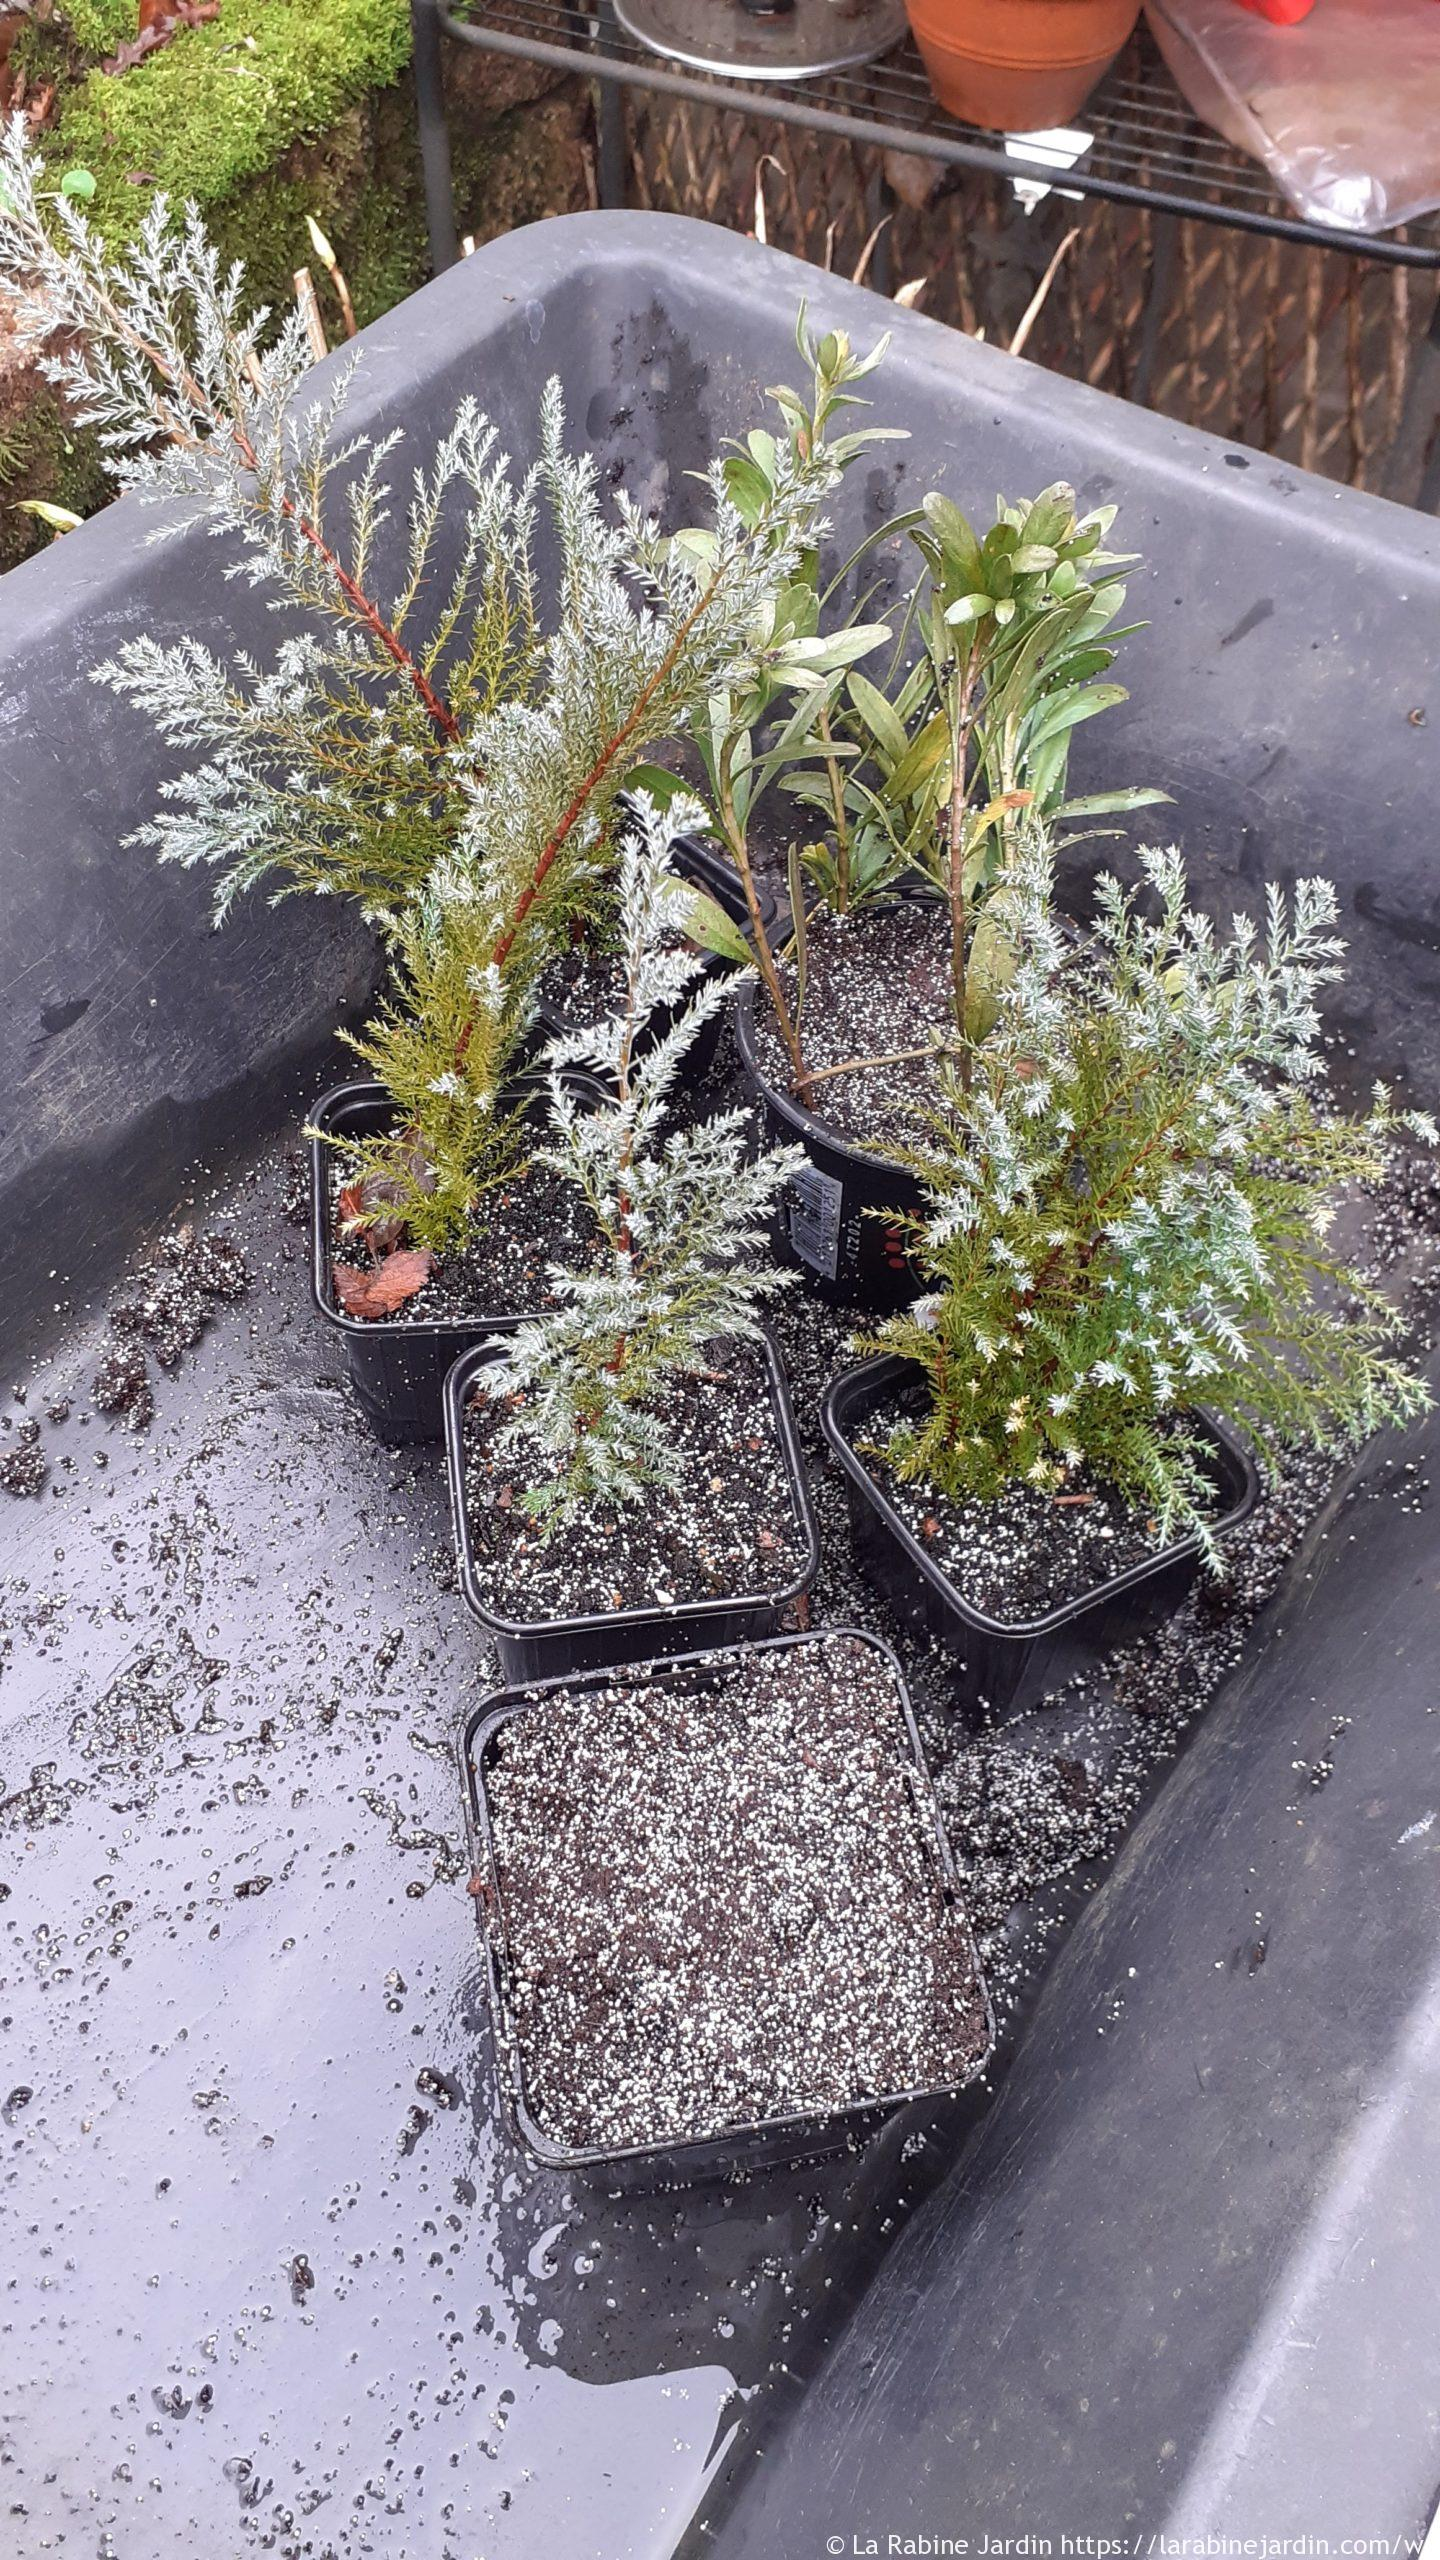 Cuttings placed in pots